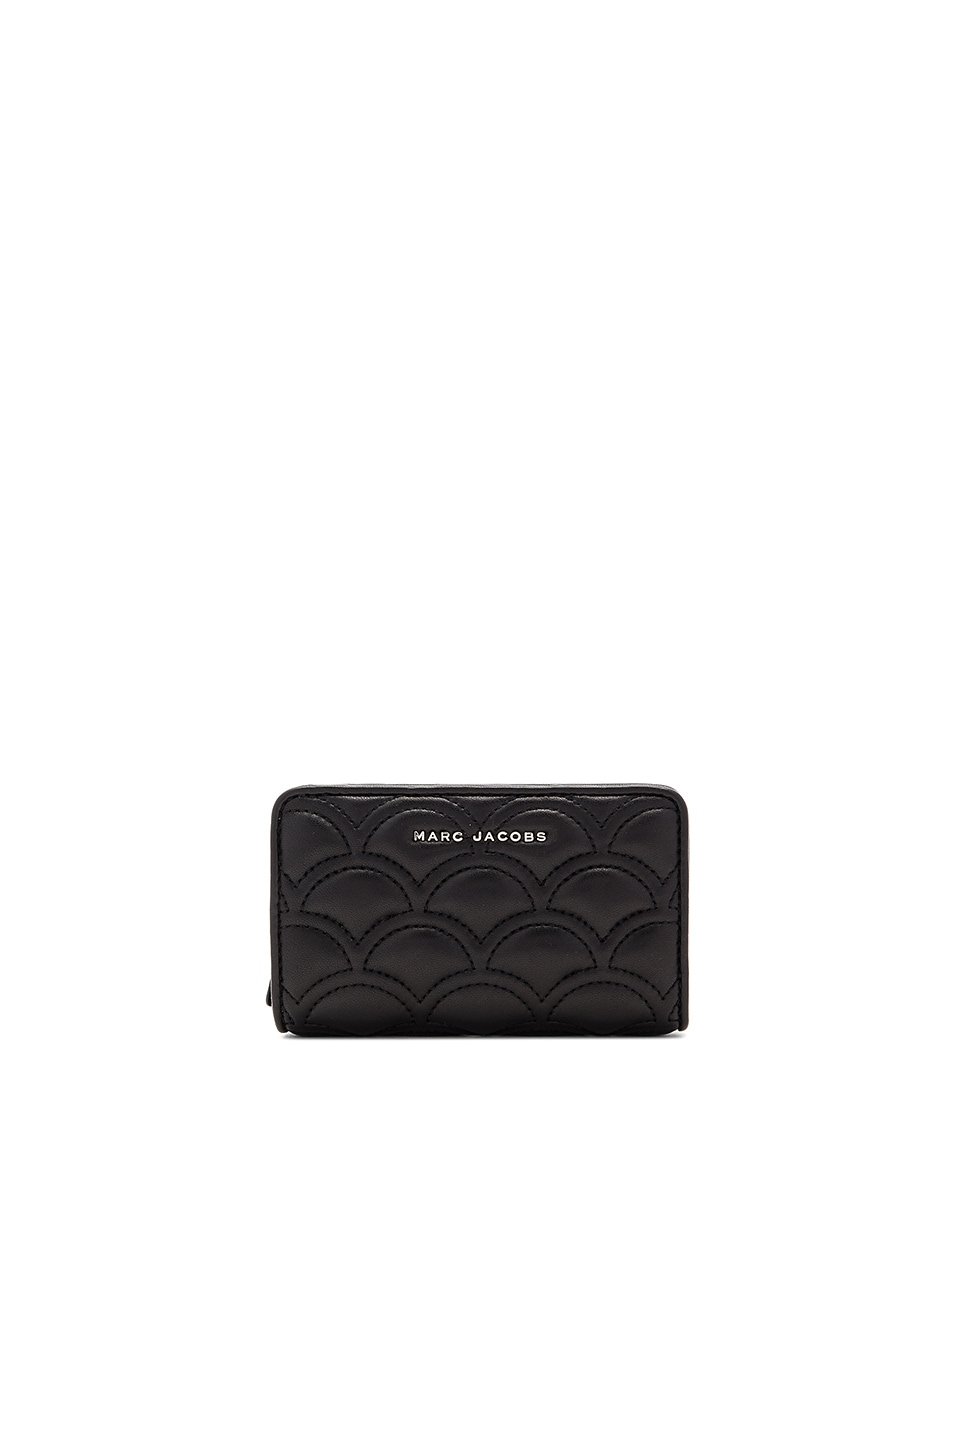 Marc Jacobs Matelasse Compact Wallet in Black